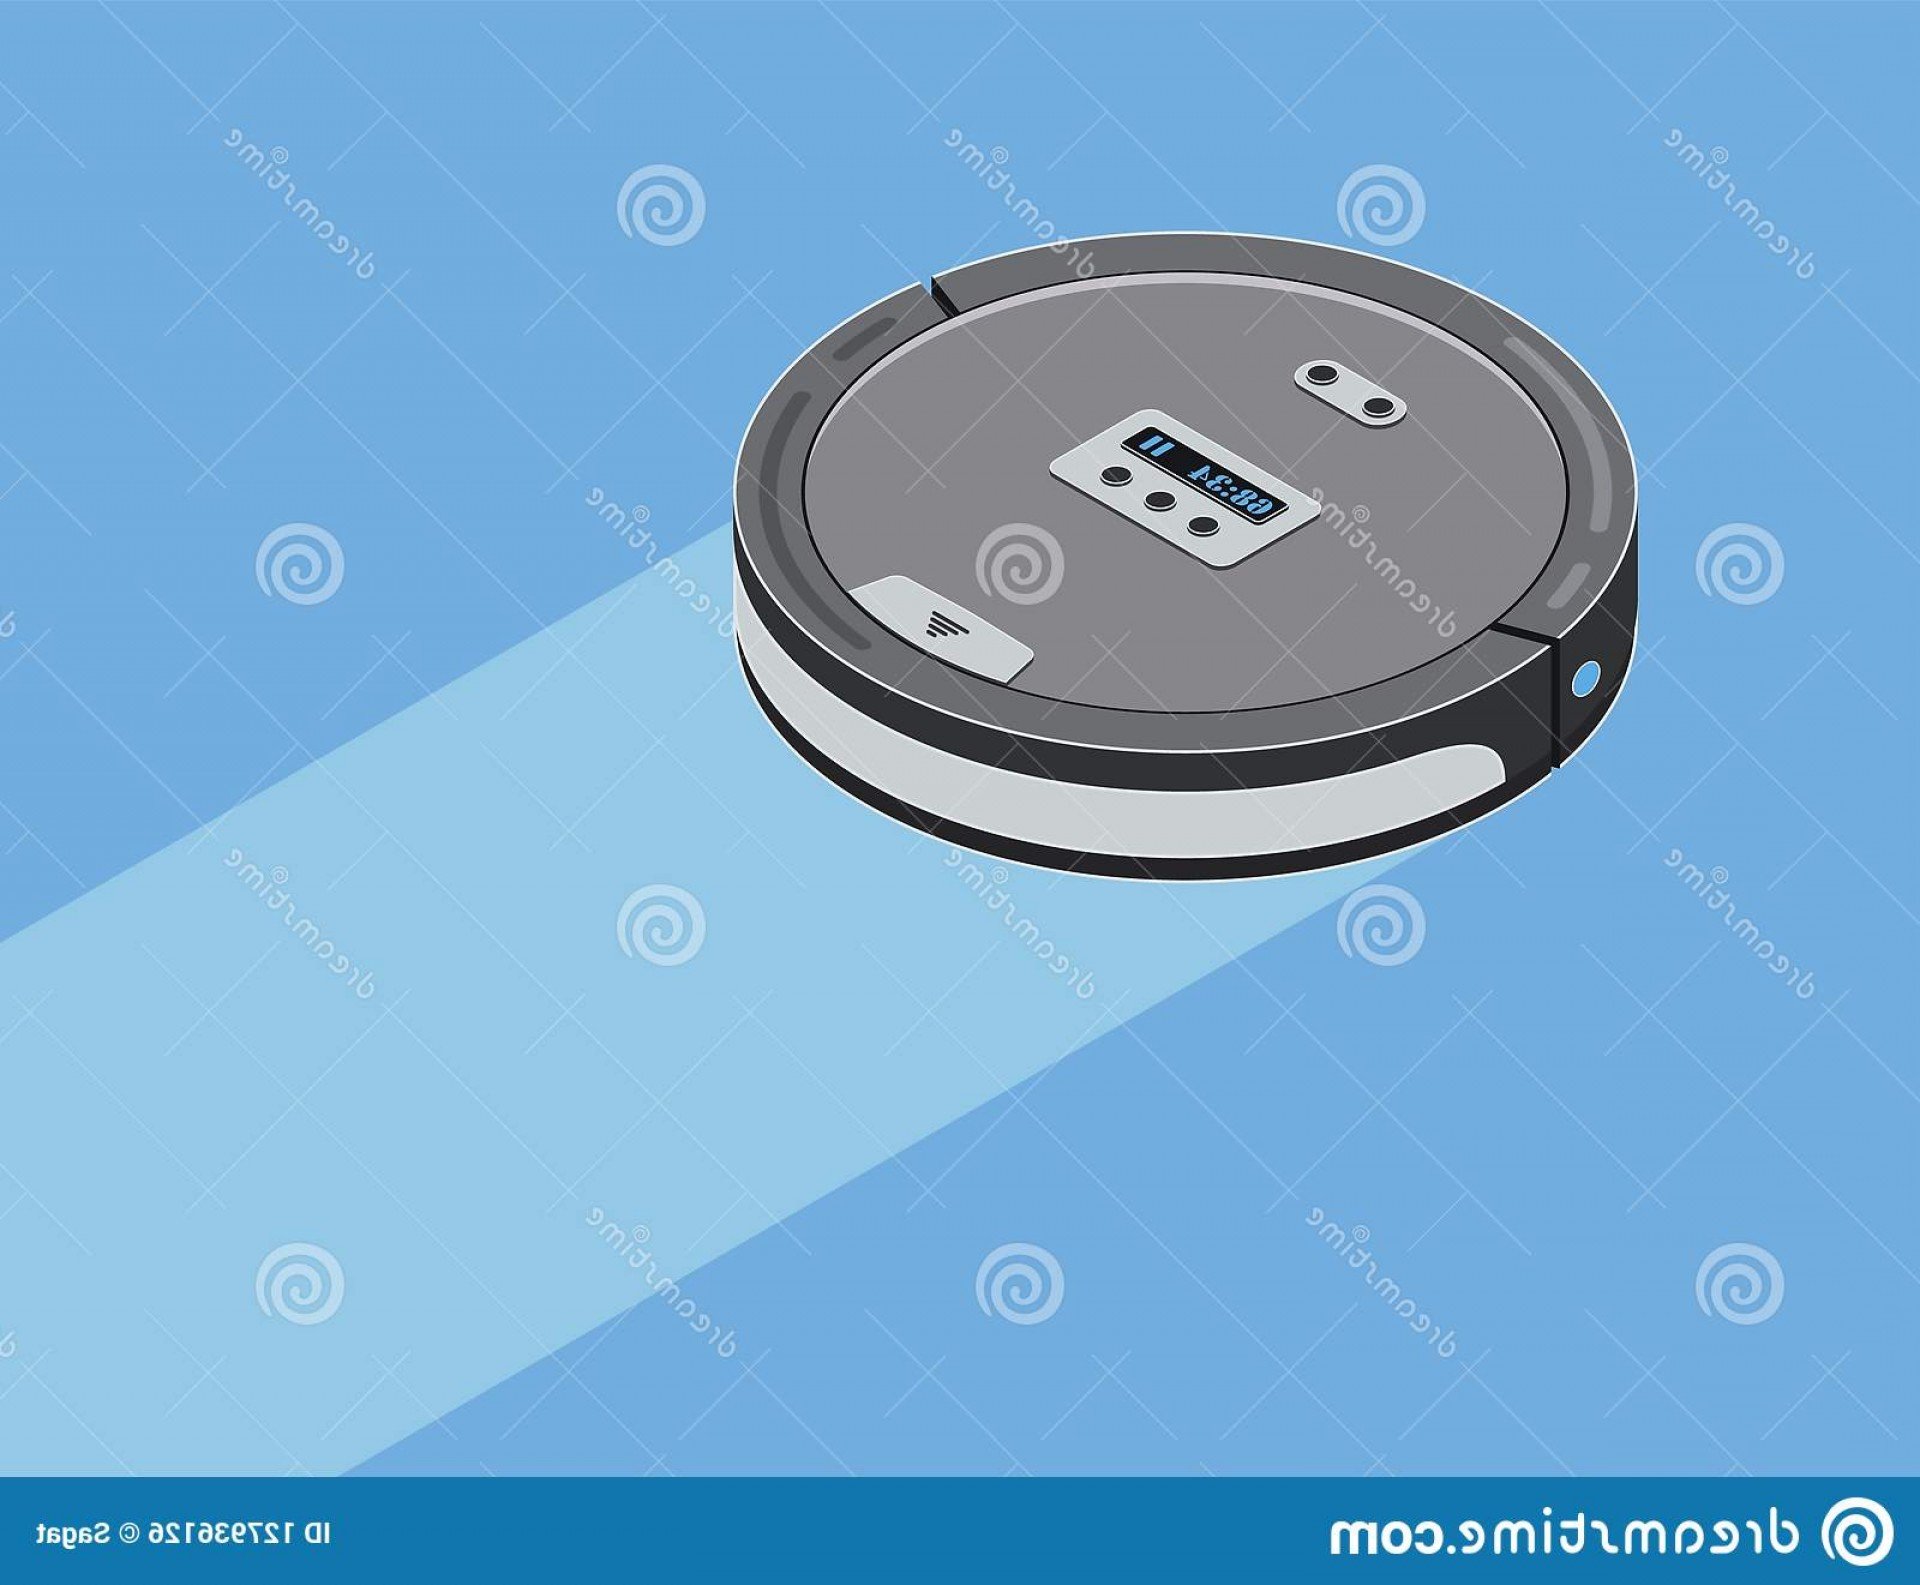 Vector Vacuum Technologies: Robot Vacuum Cleaner Isometric Robot Vacuum Cleaner Smart Robotic Household Appliance Cleaning Isometric Vector Illustration Image